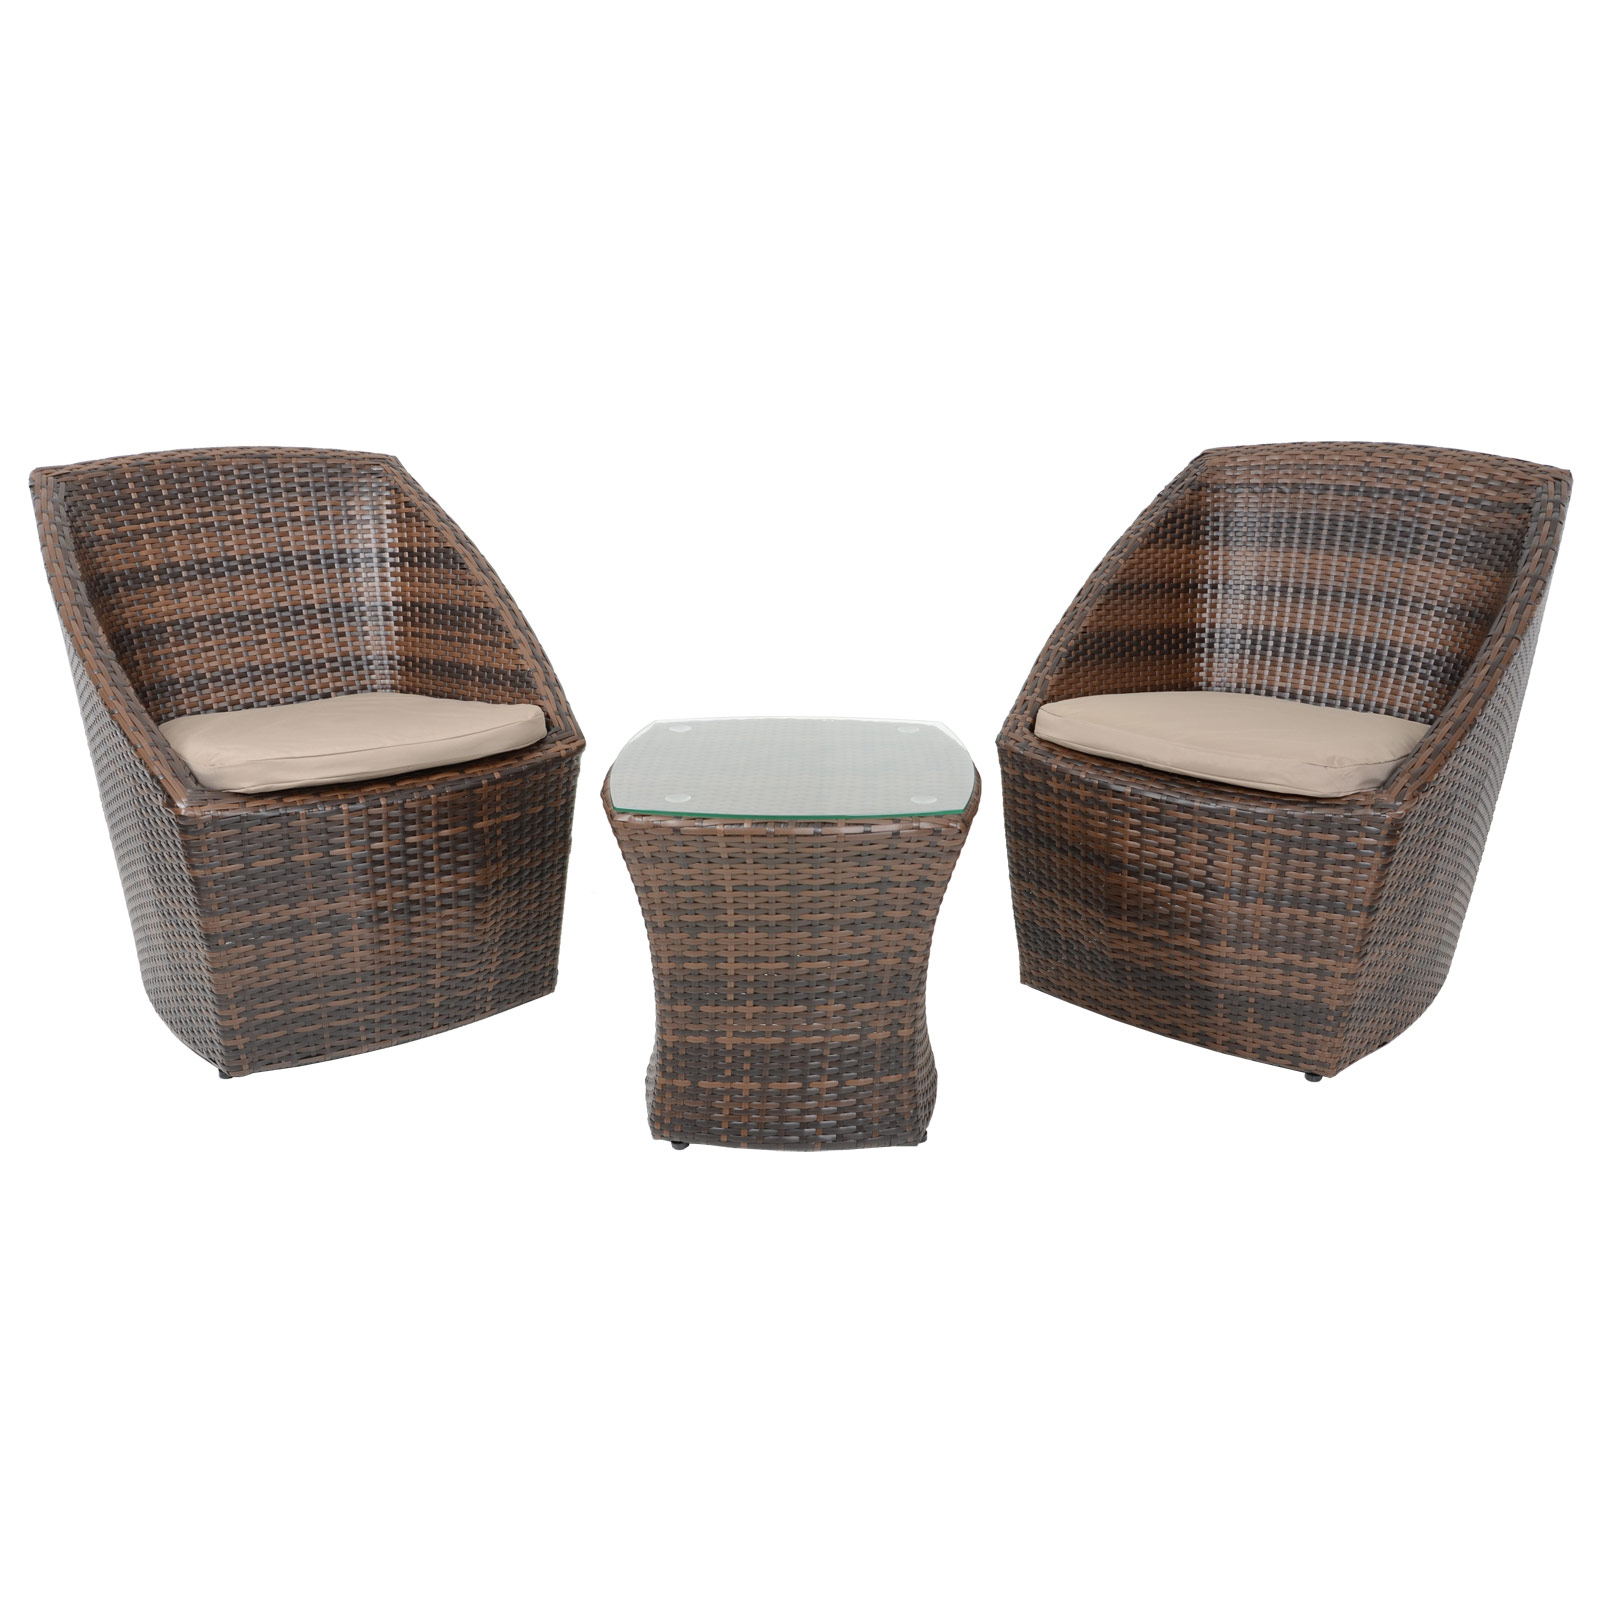 Taupe Wicker Coffee Table: Lazio Brown Bistro Set Coffee Table 2 Chairs Rattan Wicker